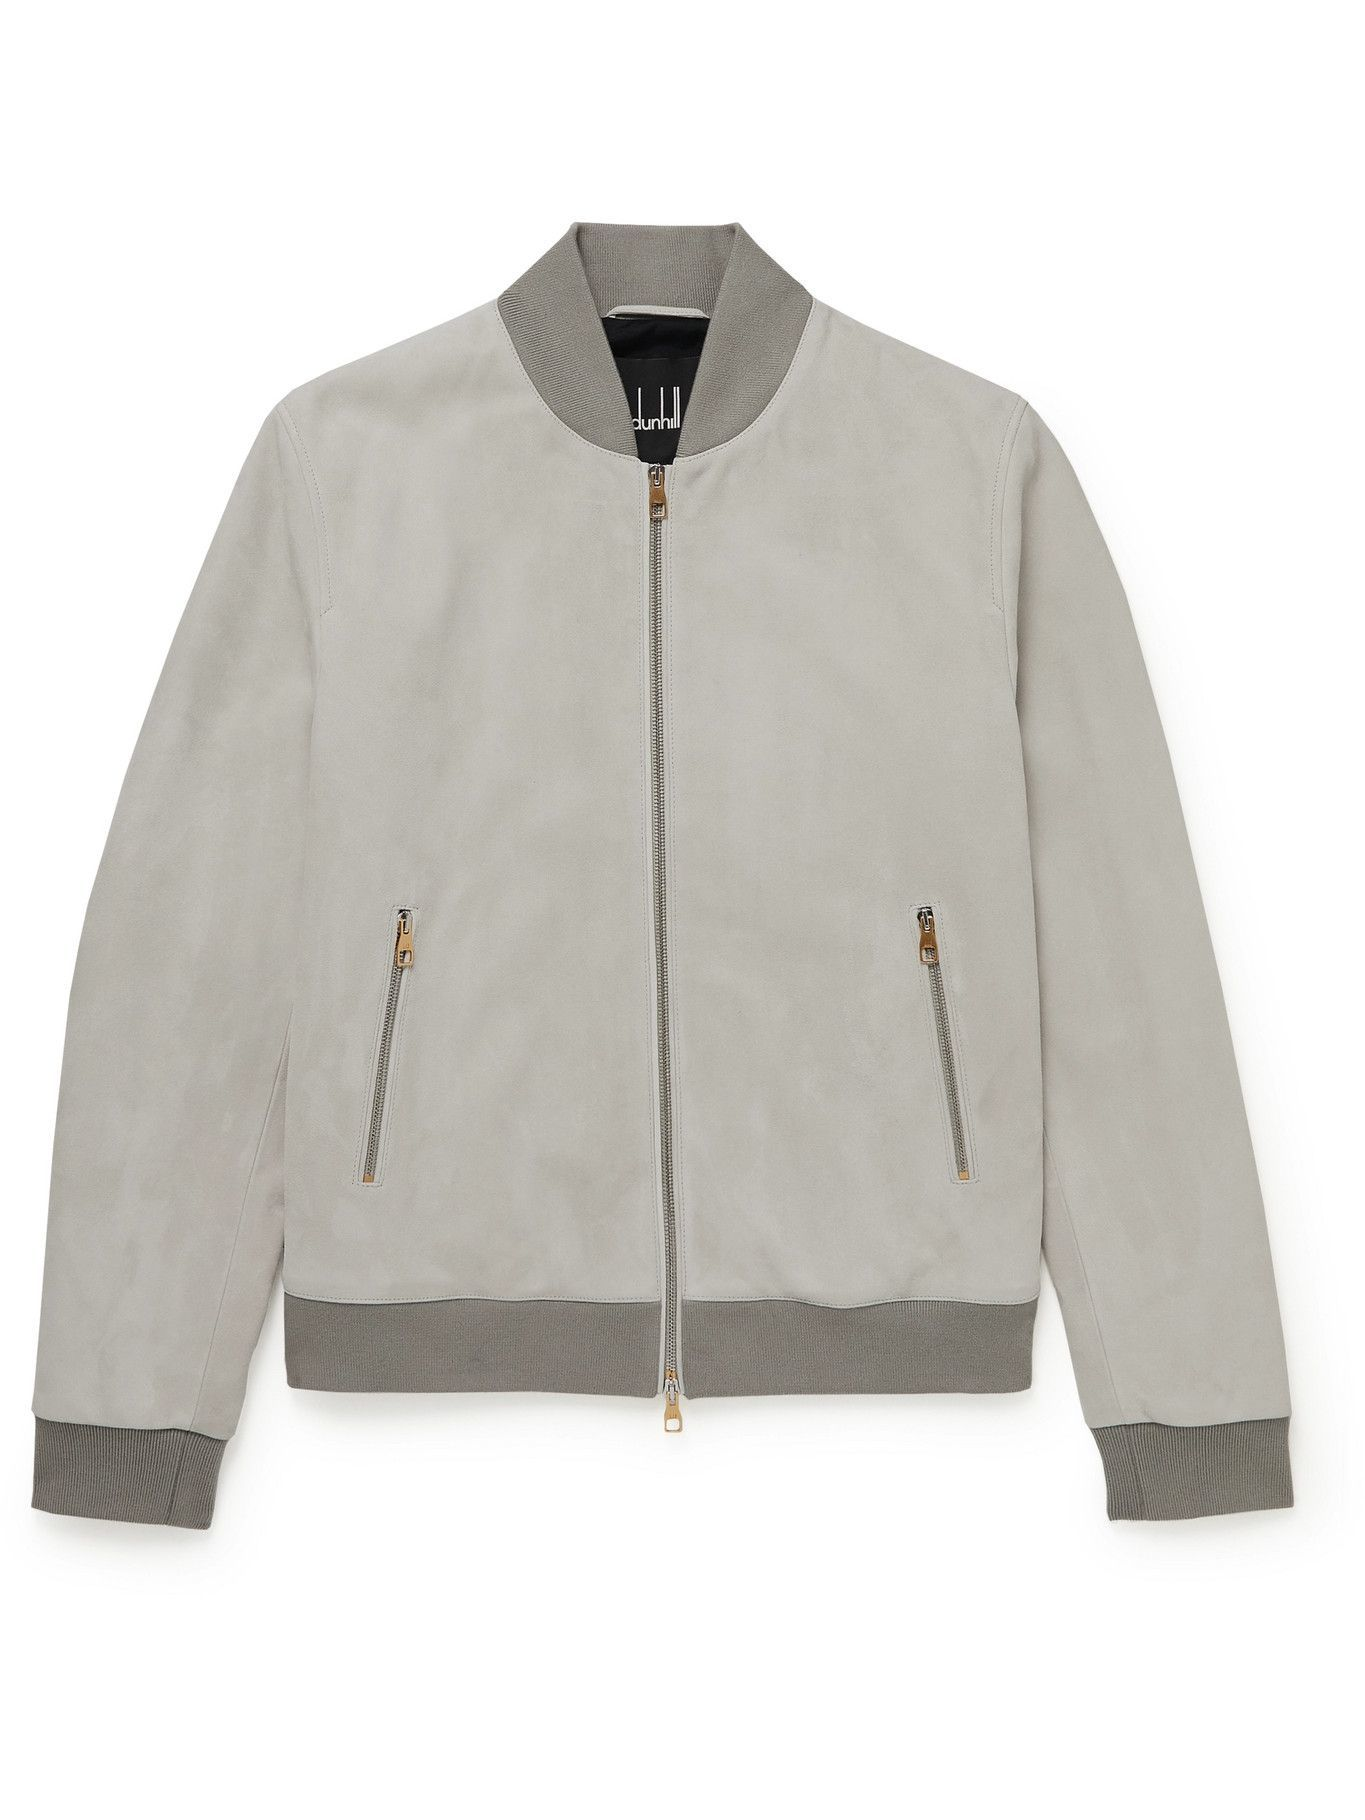 DUNHILL - Suede Bomber Jacket - Gray